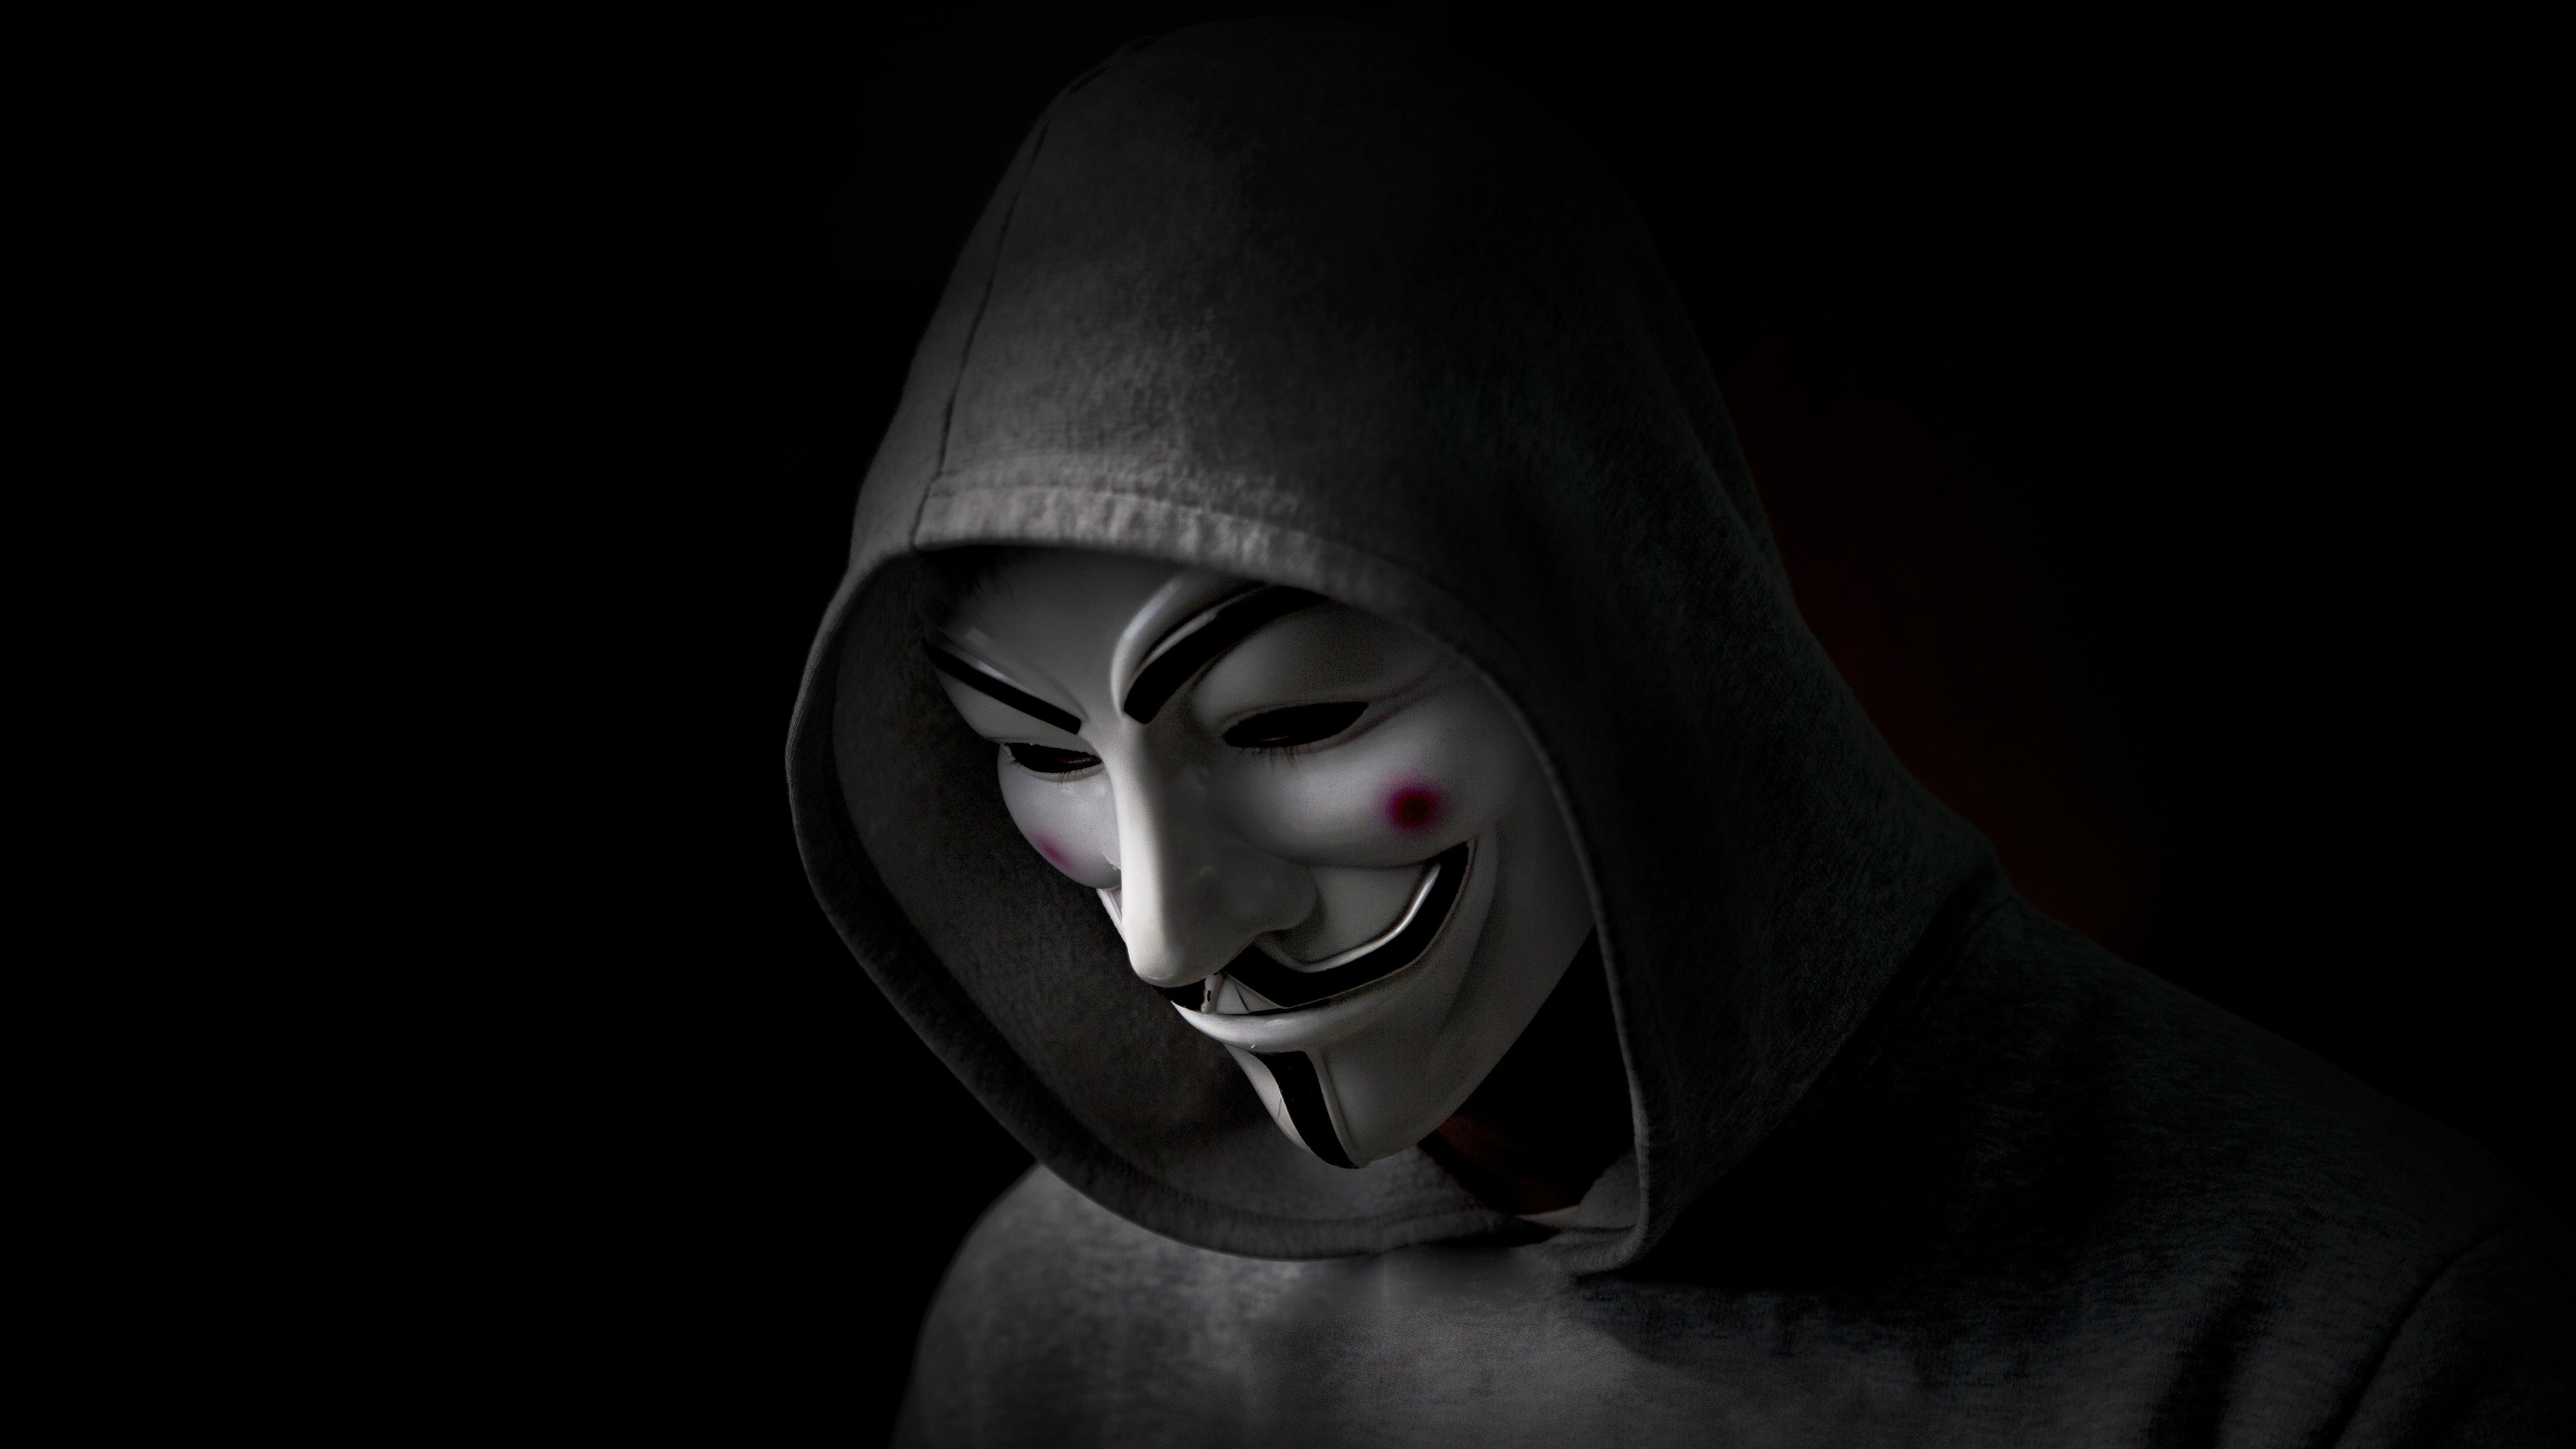 Anonymus Hacker In Hoodie Hd Computer 4k Wallpapers Images Backgrounds Photos And Pictures